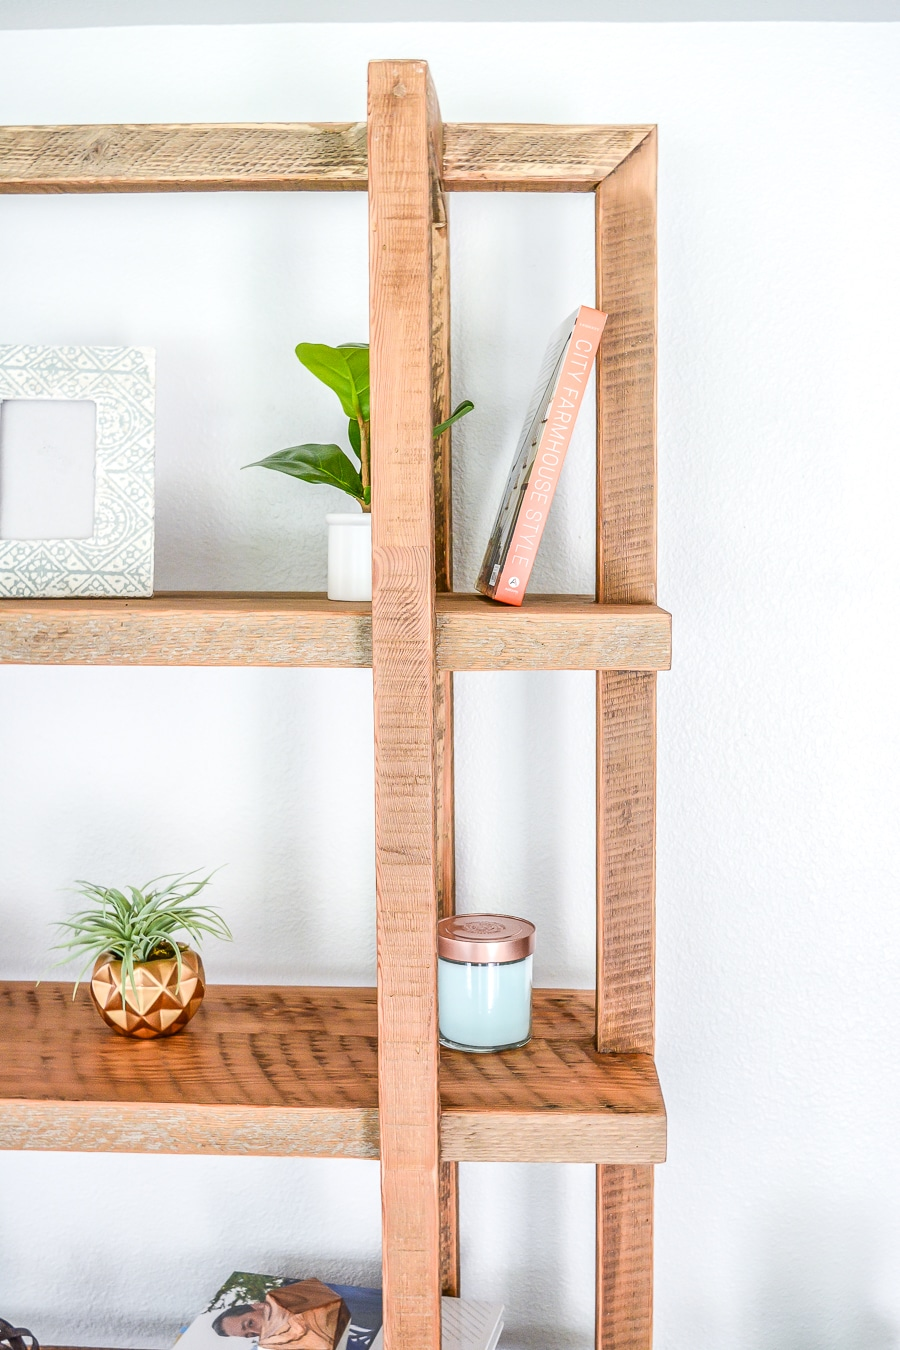 How to build a DIY bookshelf geometric design from reclaimed wood